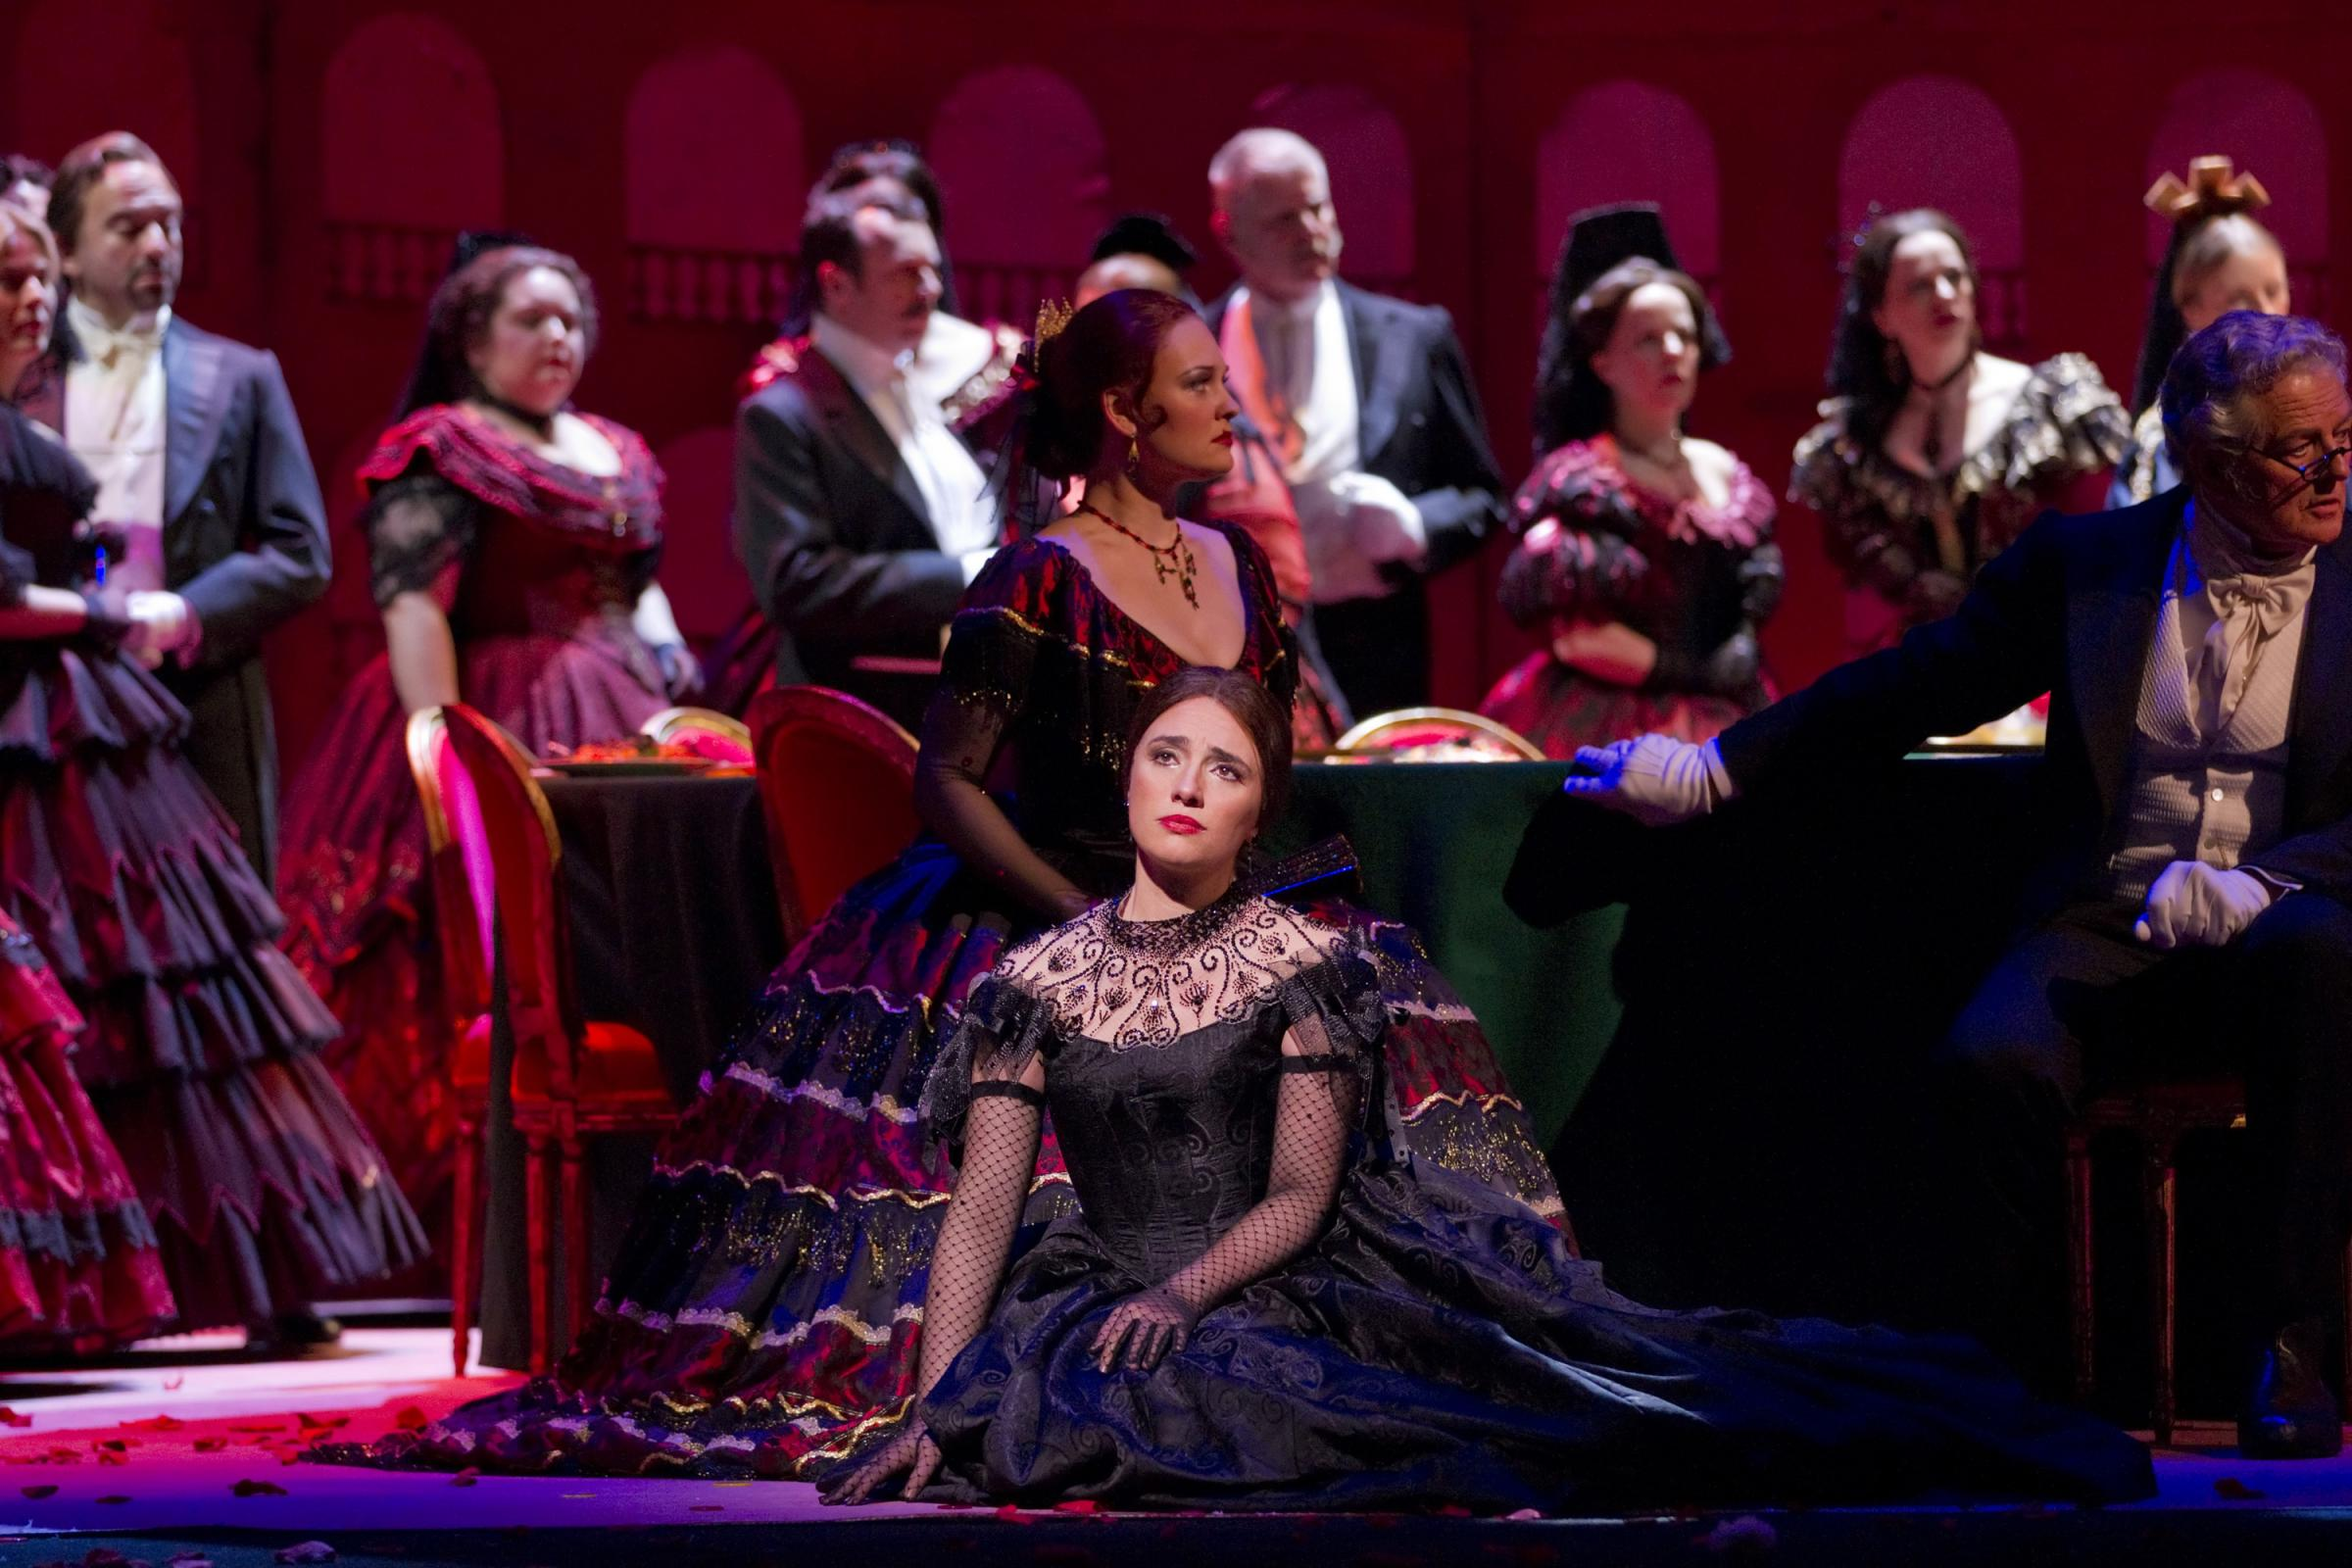 La Traviata is being broadcast live at Cardigan's Theatr Mwldan. PICTURE: Johan Persson